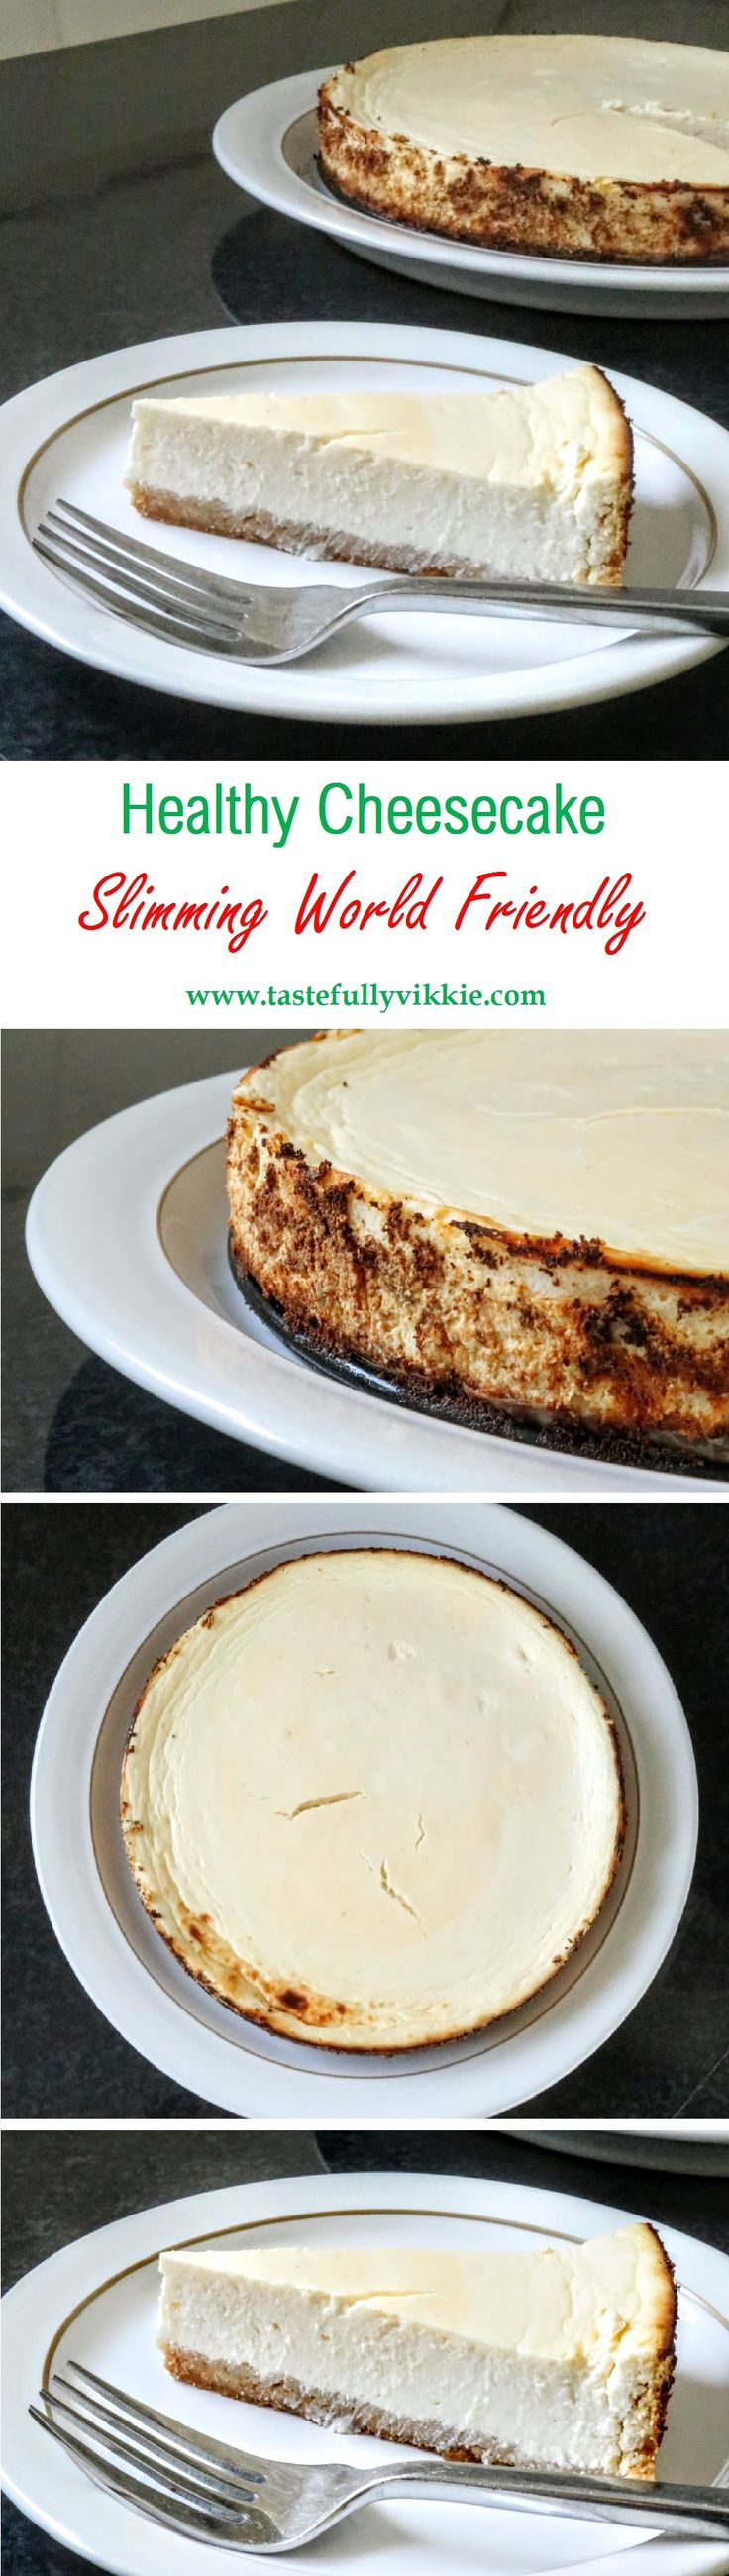 healthy slimming world cheese cake More